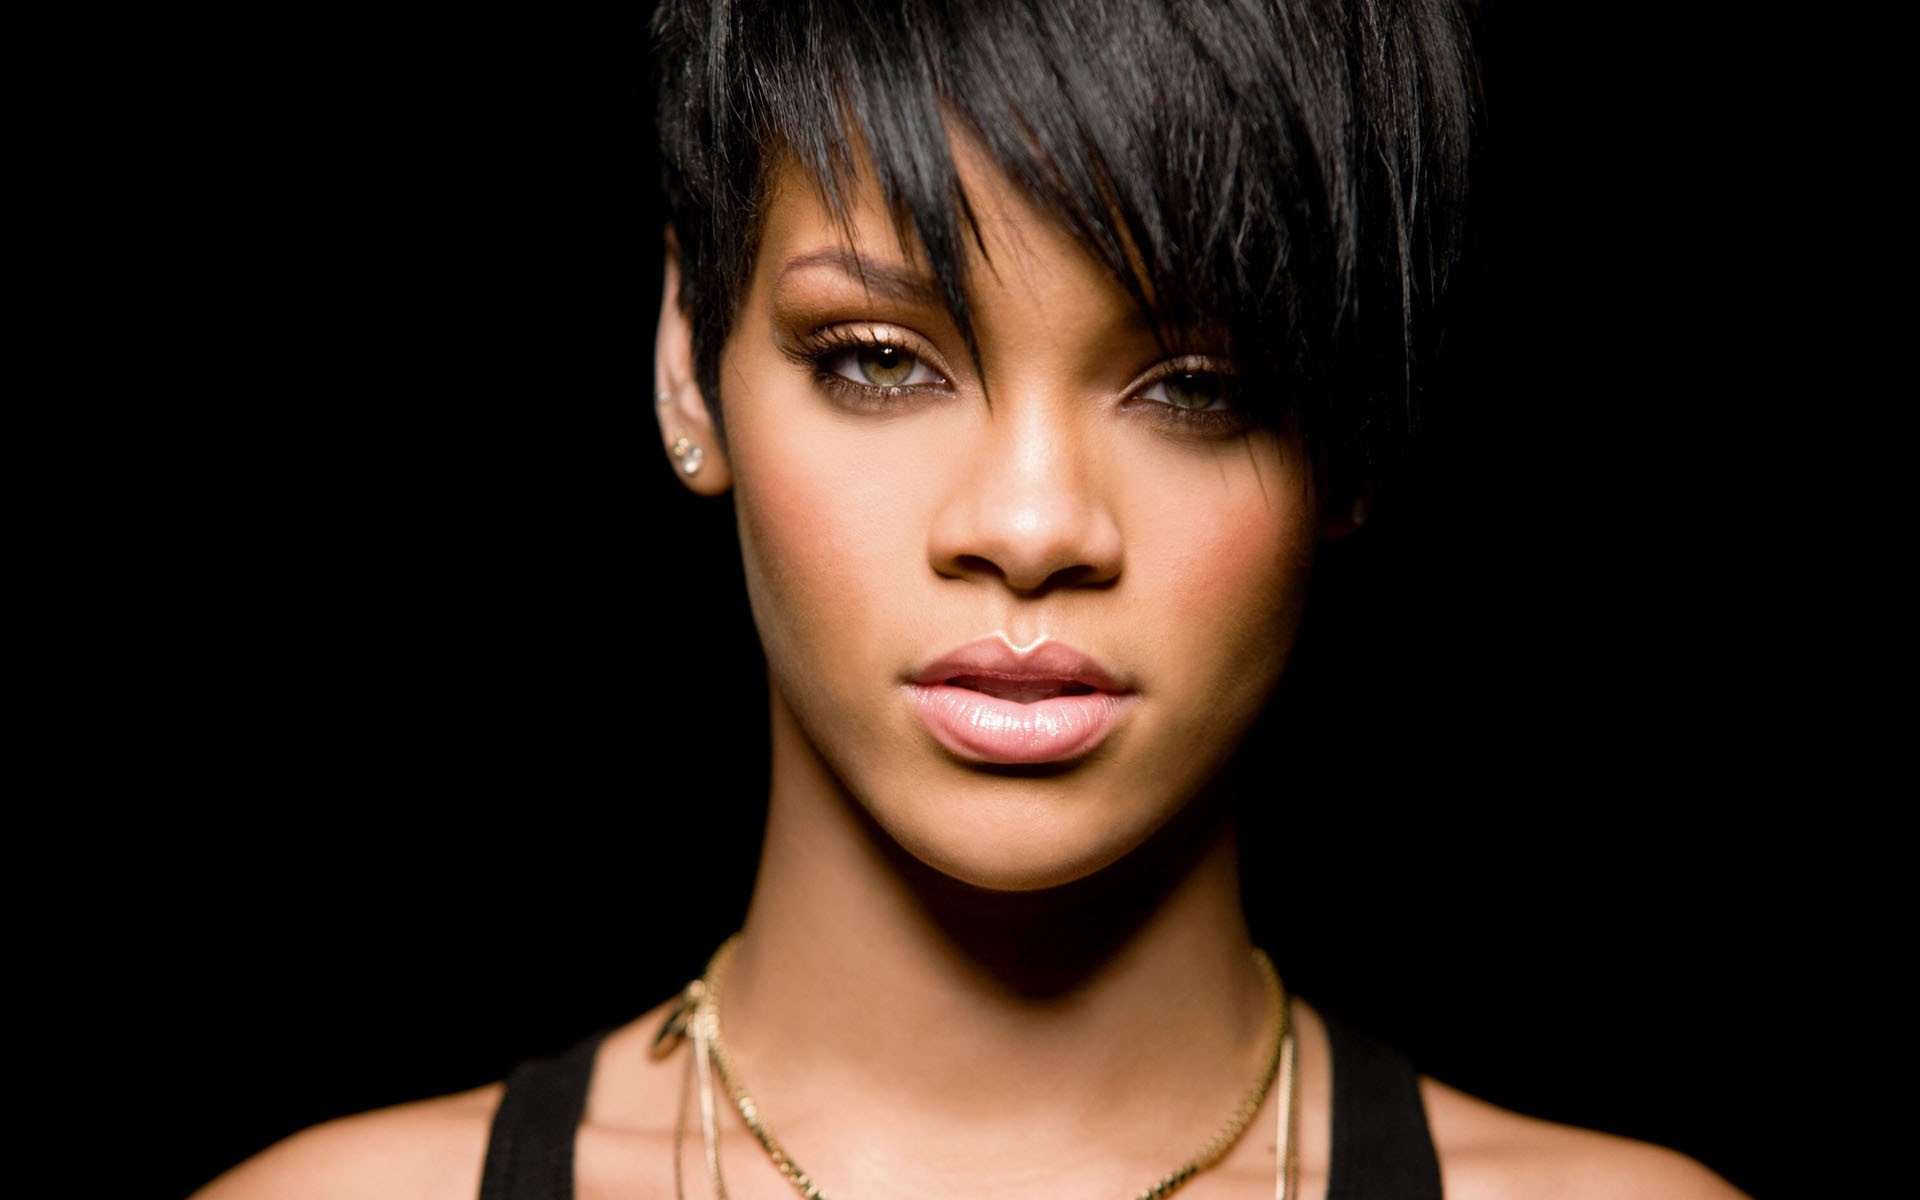 Rihanna Short Hair 288.42 Kb